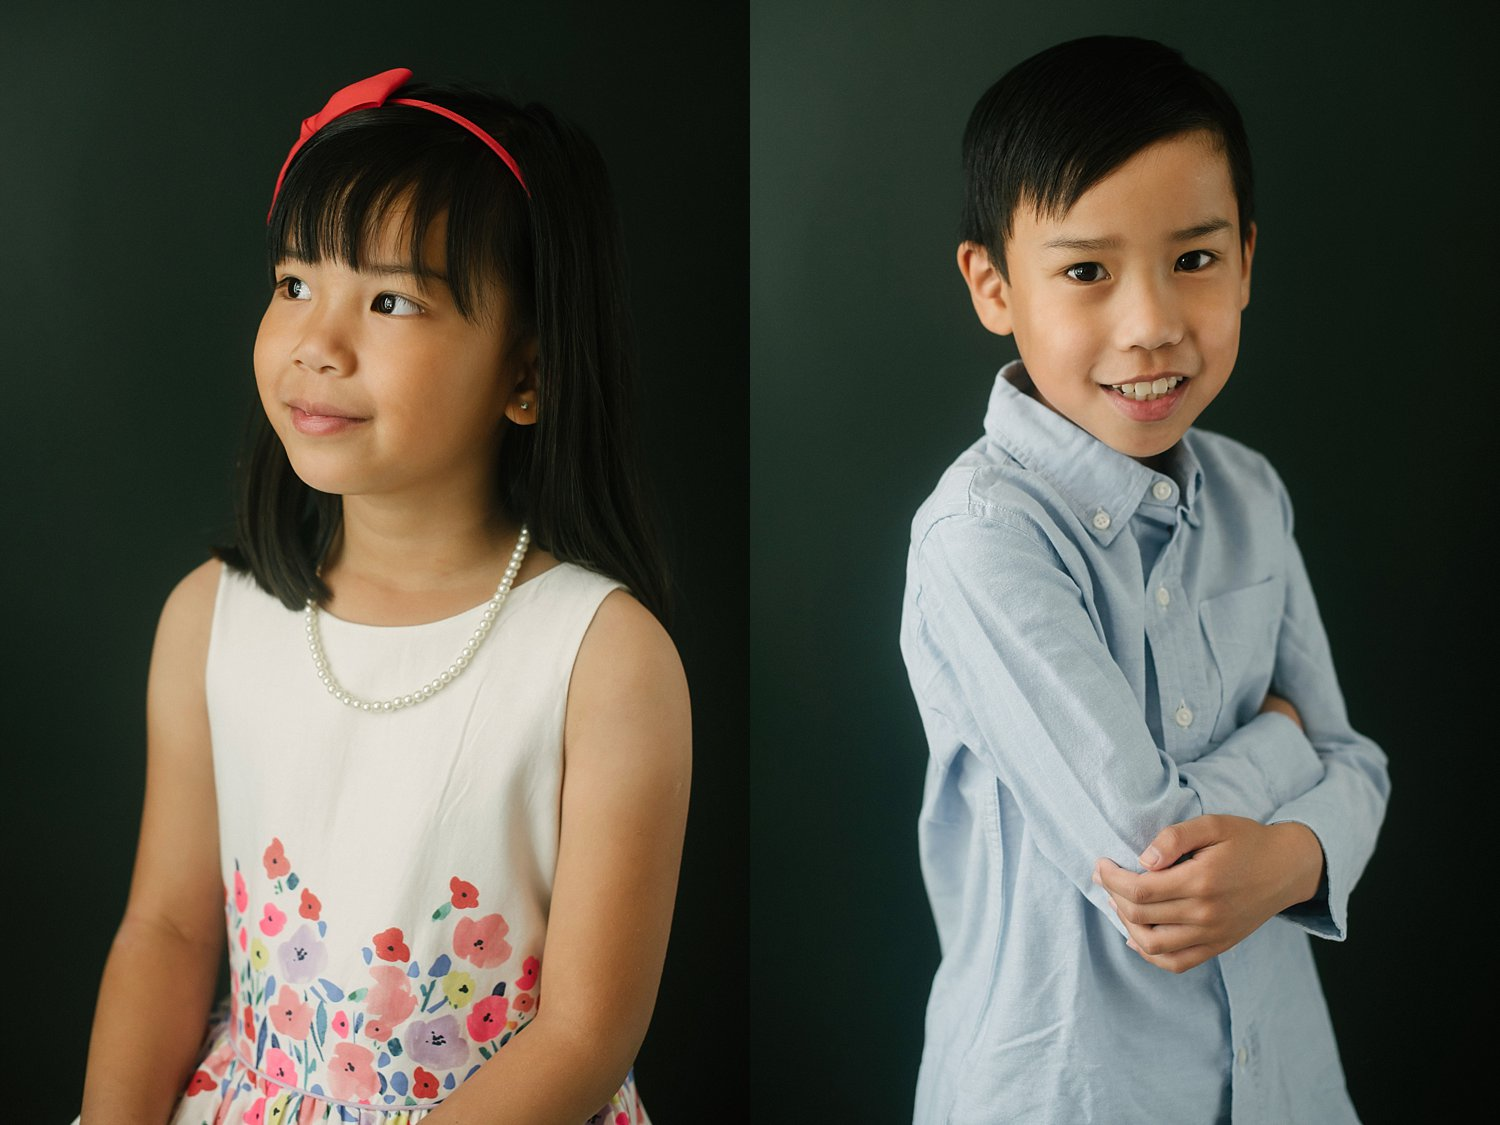 kids with dark background - 6 Types of Portrait Backgrounds You Can Use for Your Images